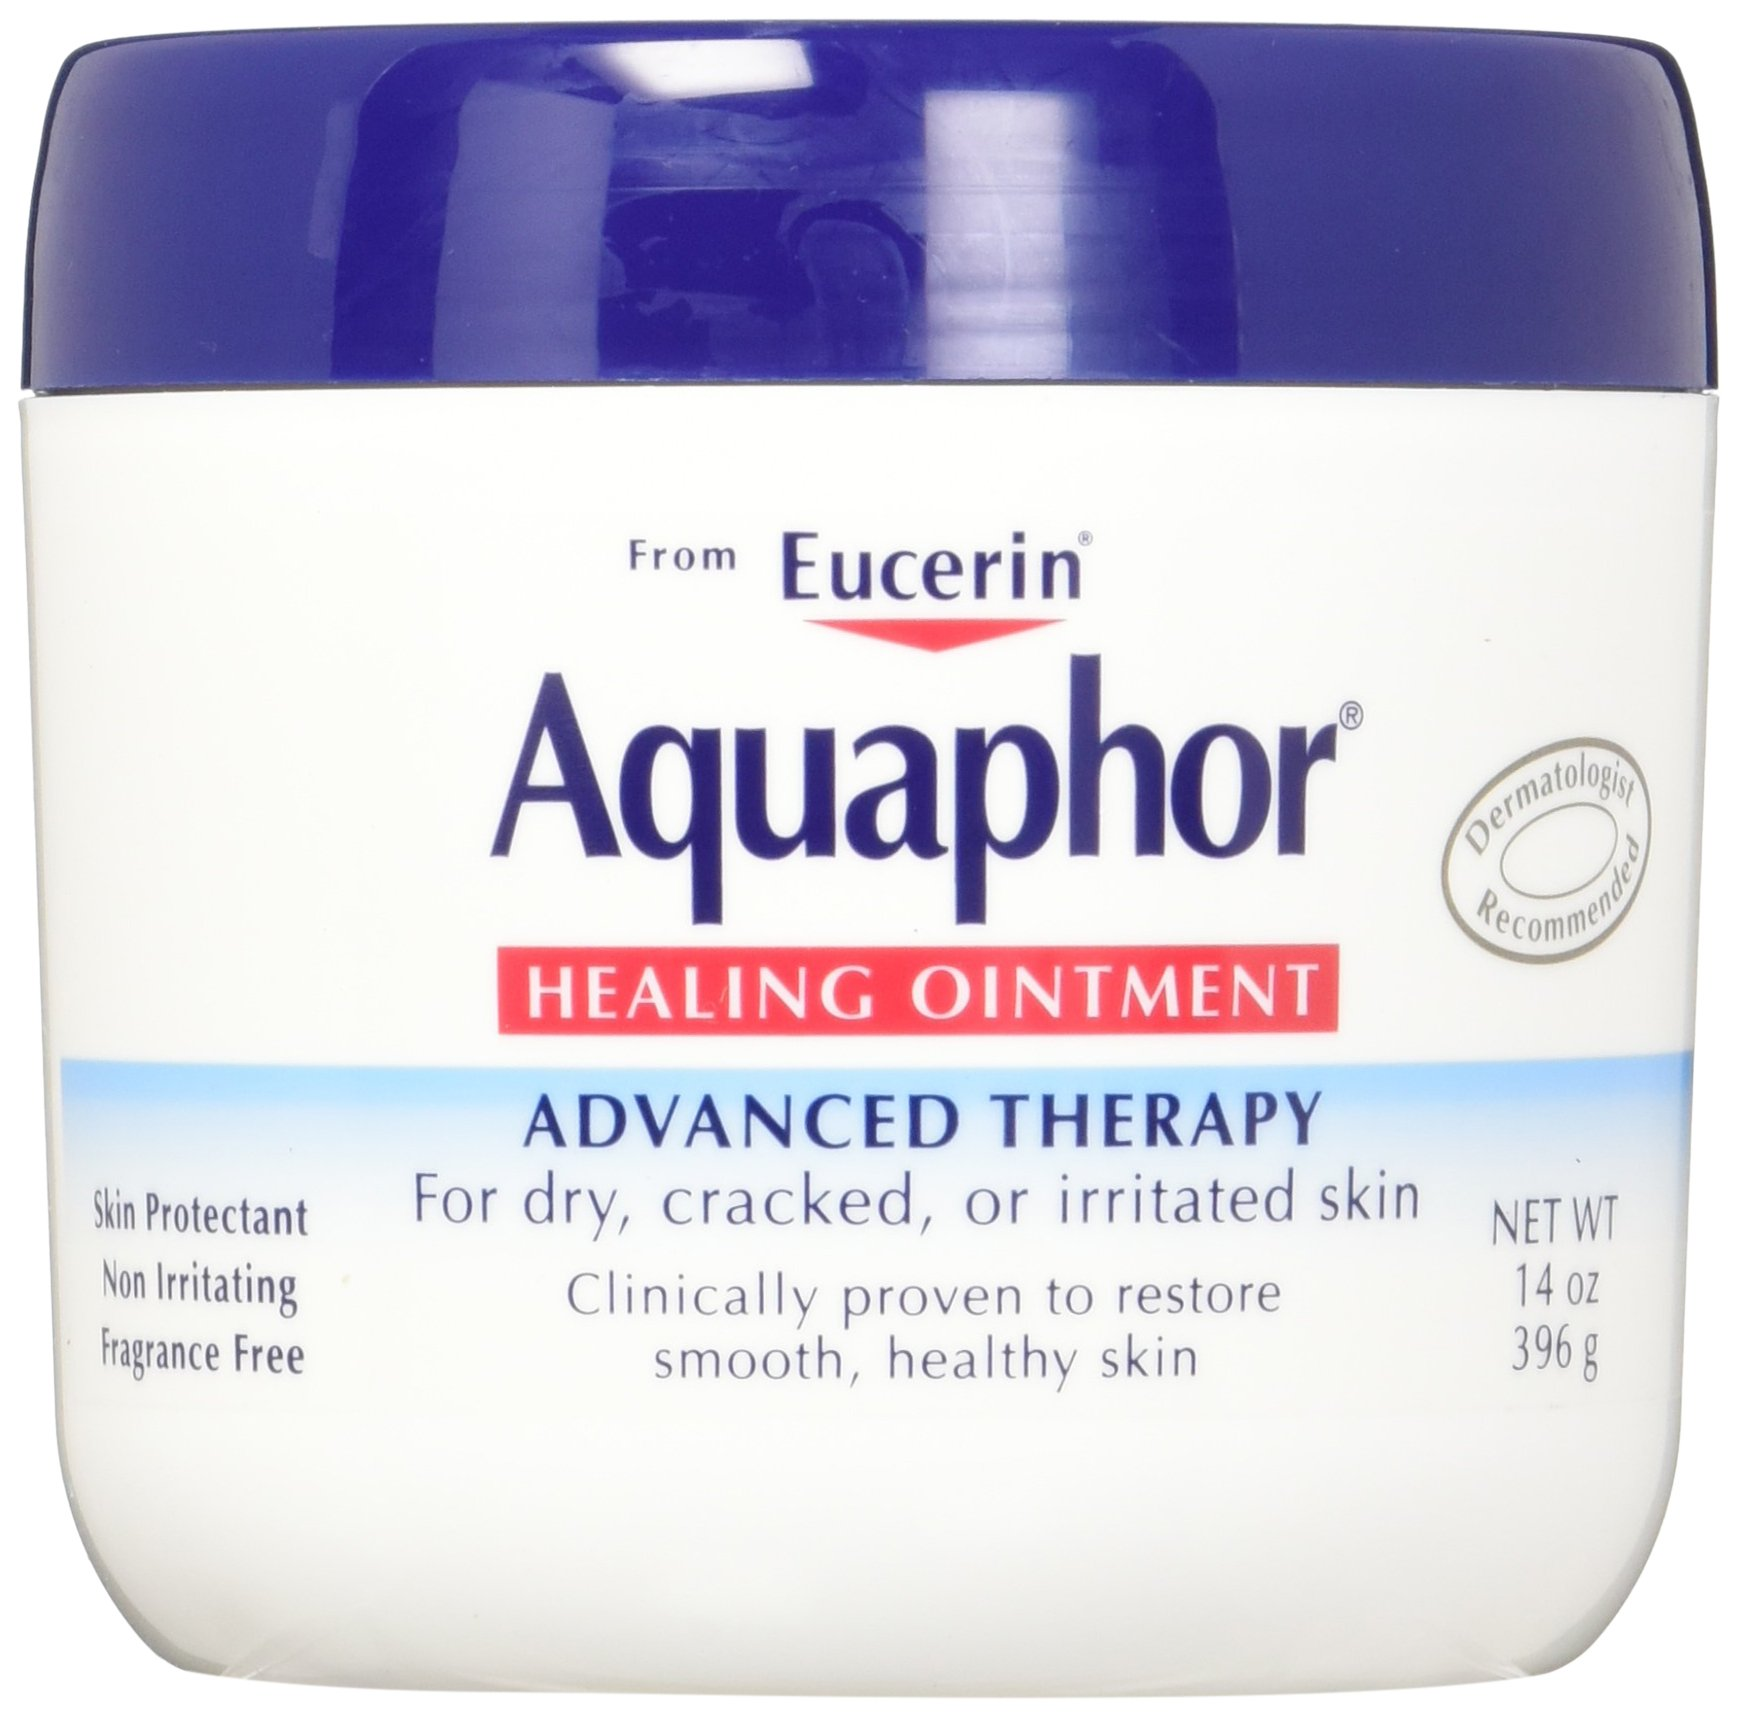 Aquaphor Baby Healing Ointment Advanced Therapy Skin Protectant, Multipack, 14 Ounce (Pack of 2) by Aquaphor